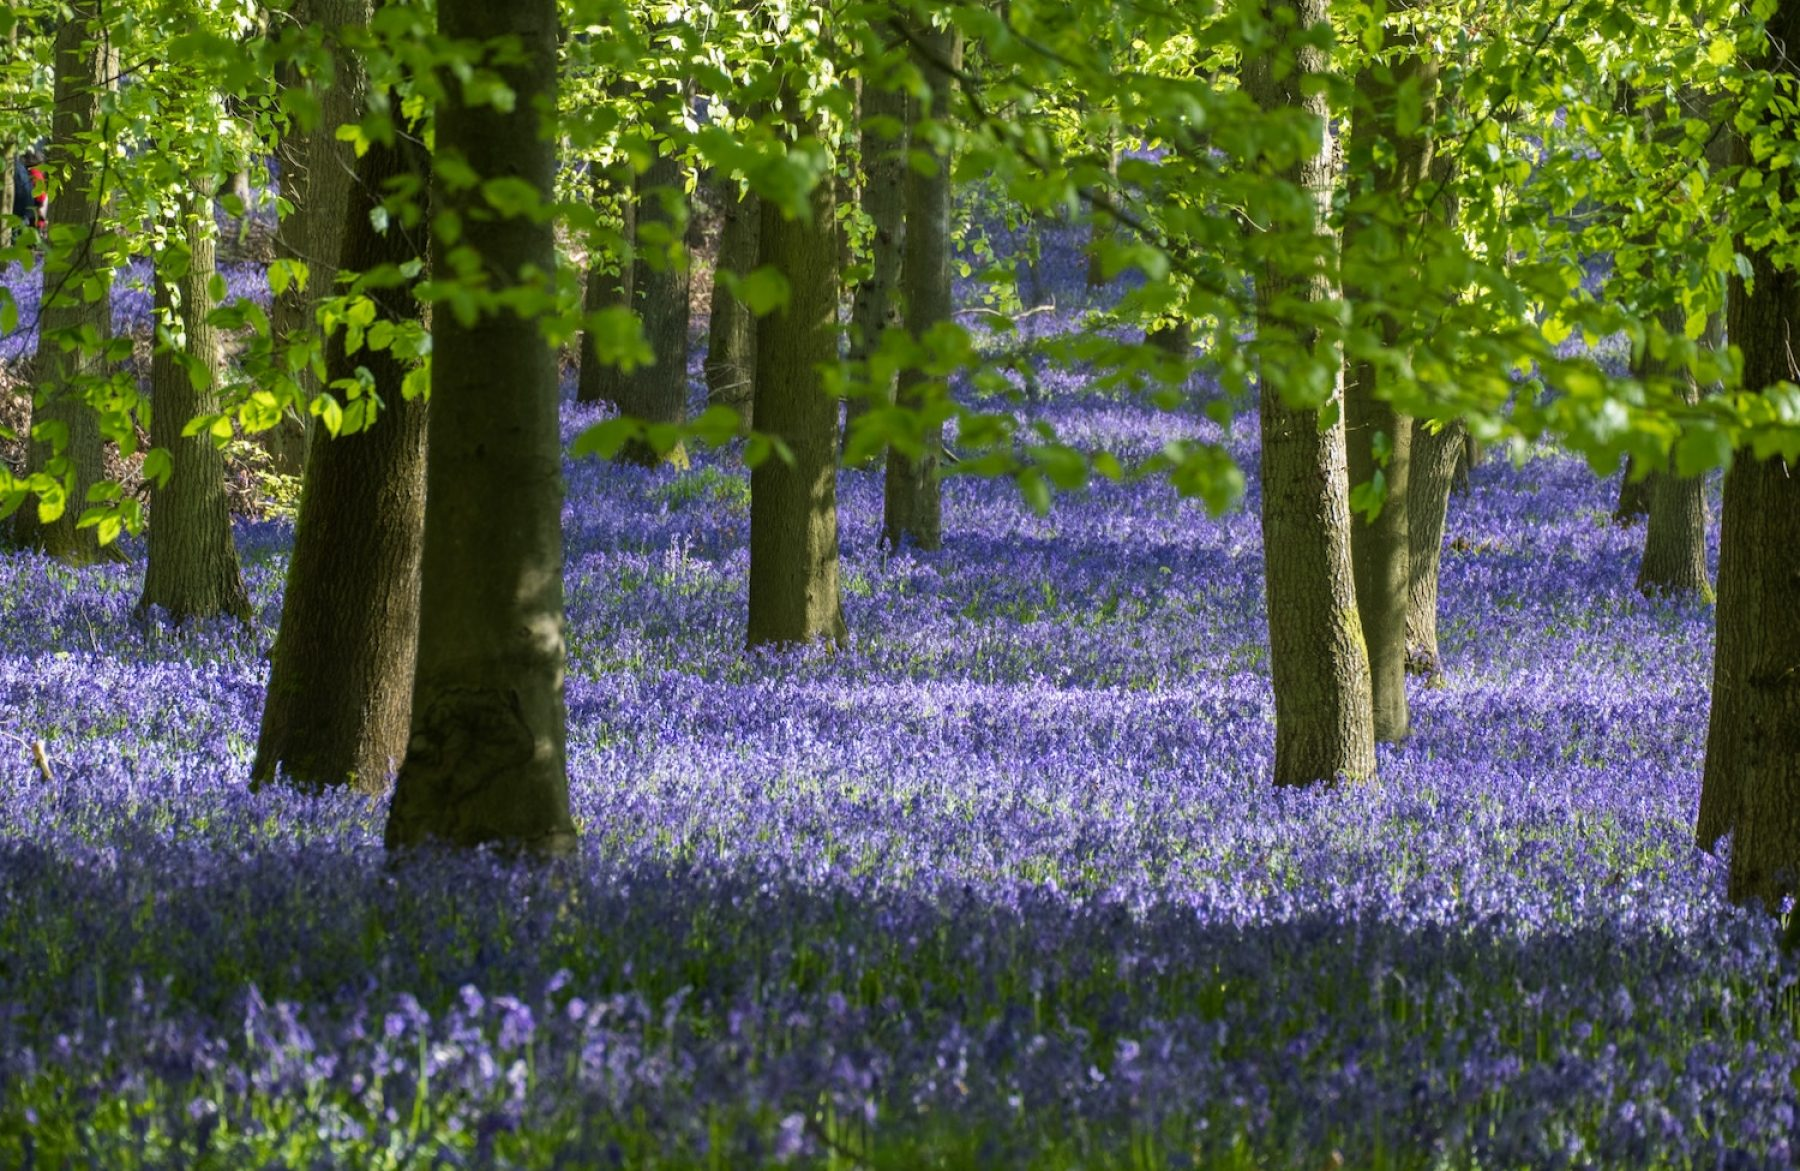 Image for 'Redirect billions of pounds of farm subsidies towards restoring nature,' urge campaigners